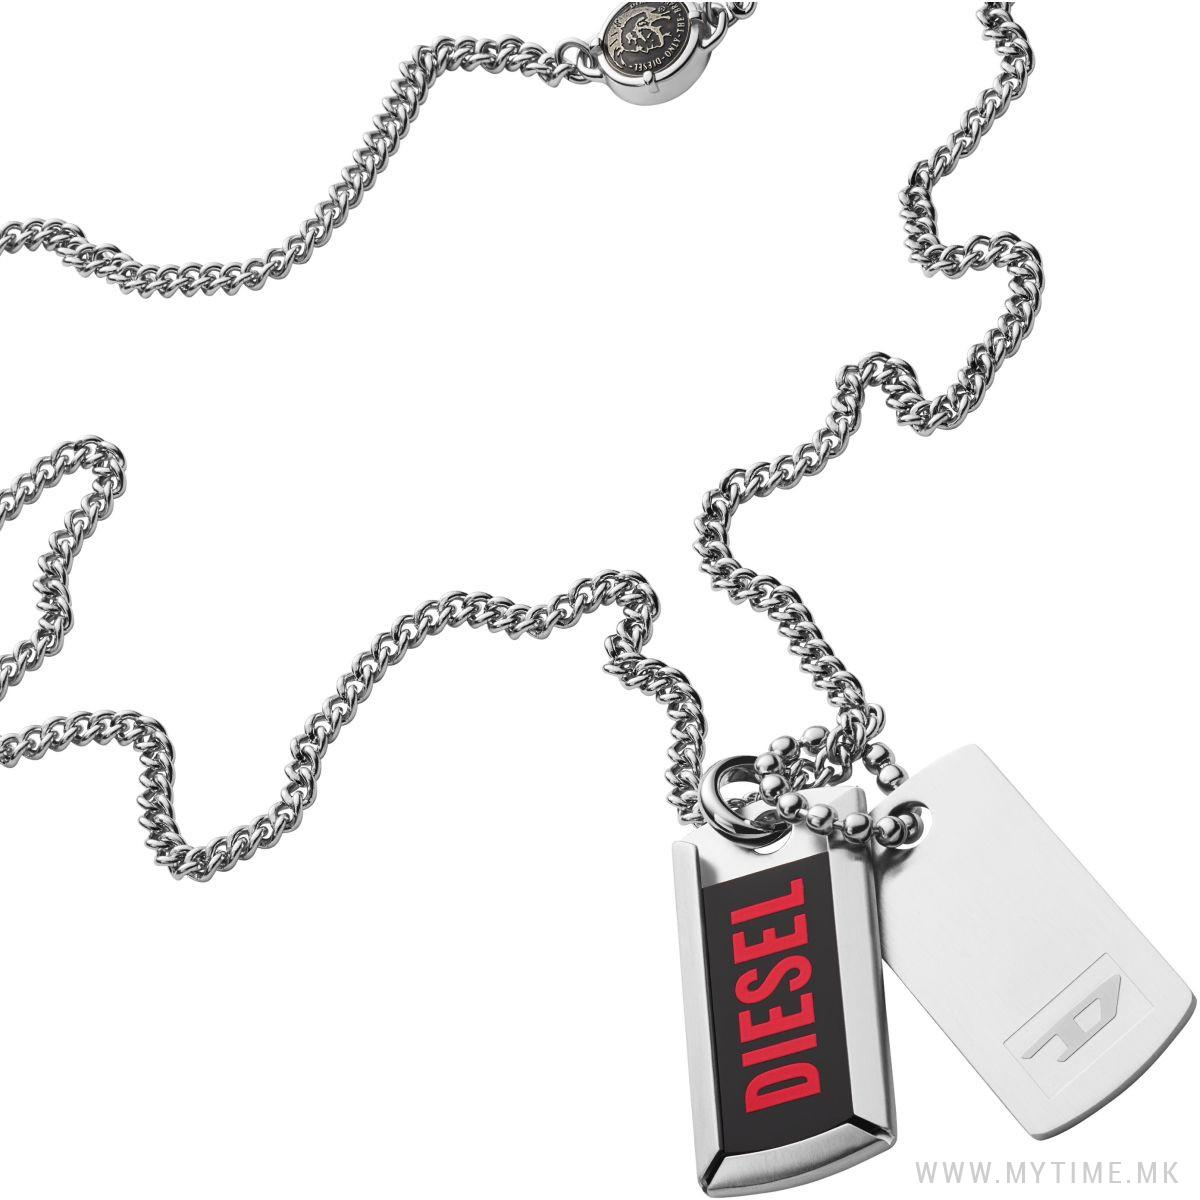 DX1244040 DOUBLE DOGTAGS